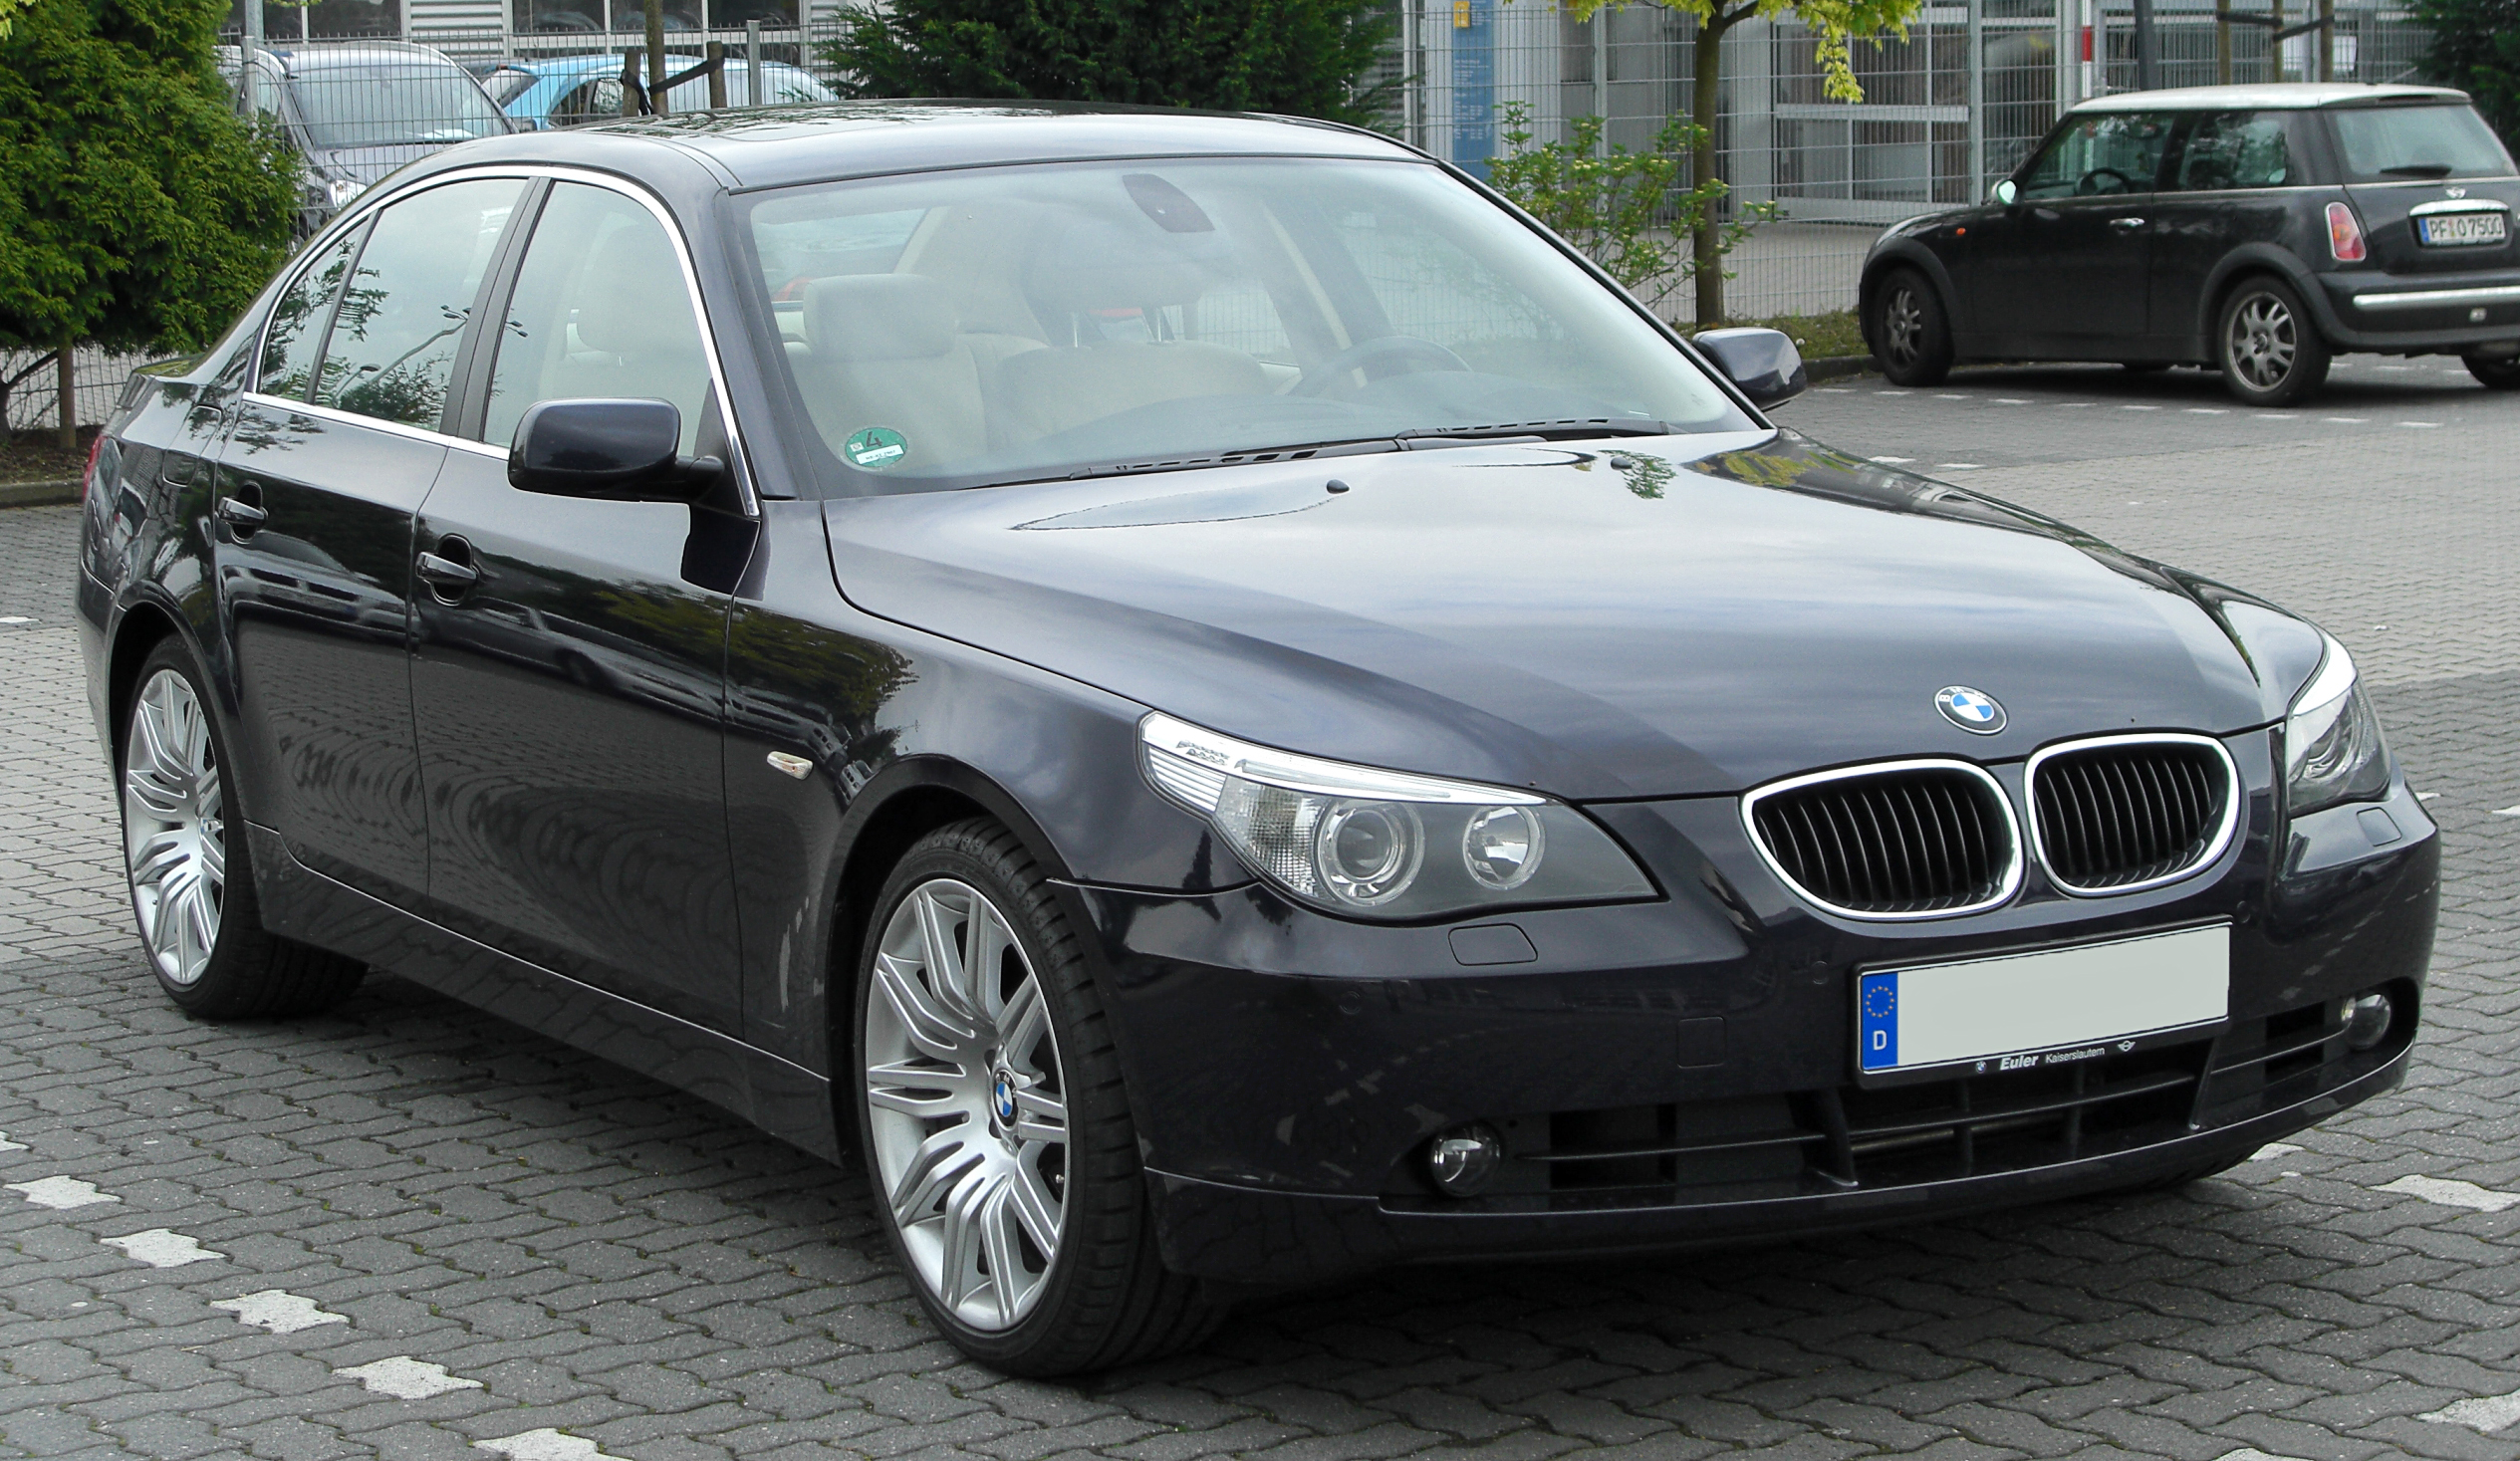 File Bmw 5er E60 Front 20100508 Jpg Wikimedia Commons